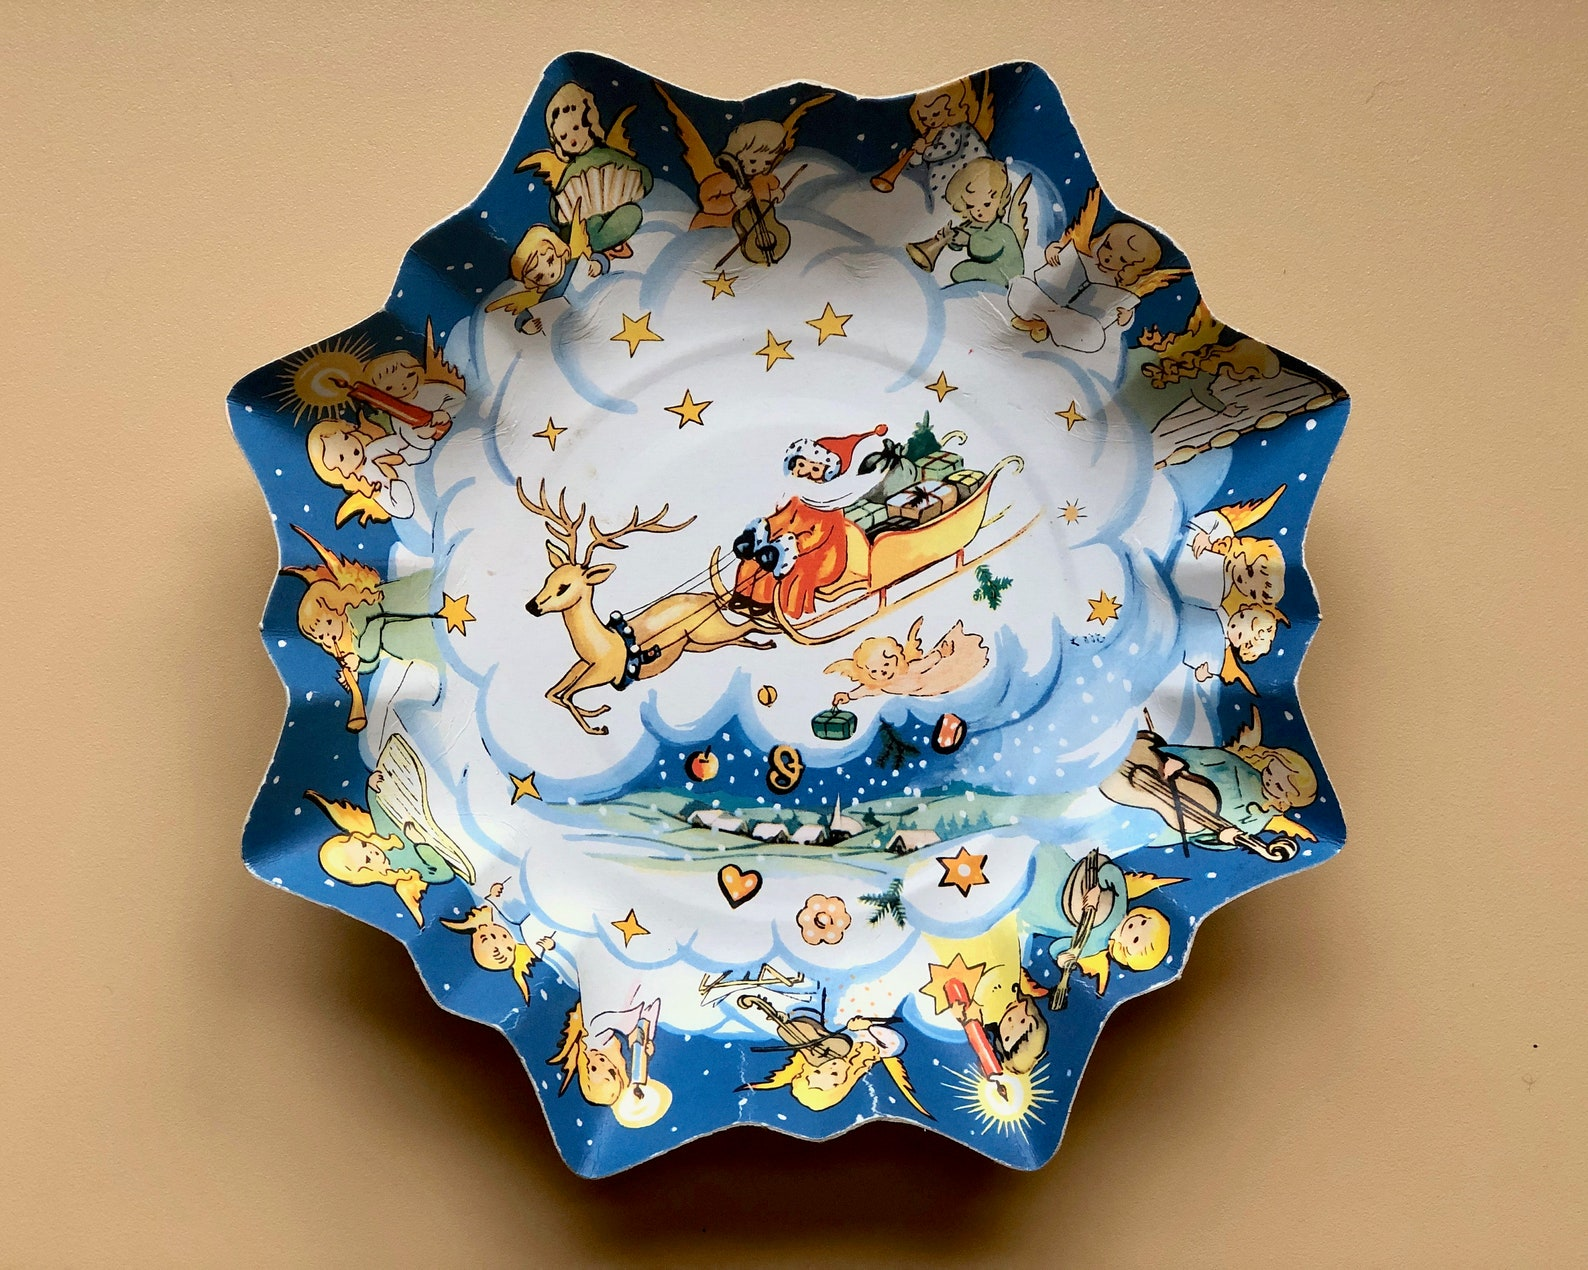 Pressed Paper Christmas Cookie Plate Tray from West Germany - Santa's Sleigh and Angel Musicians